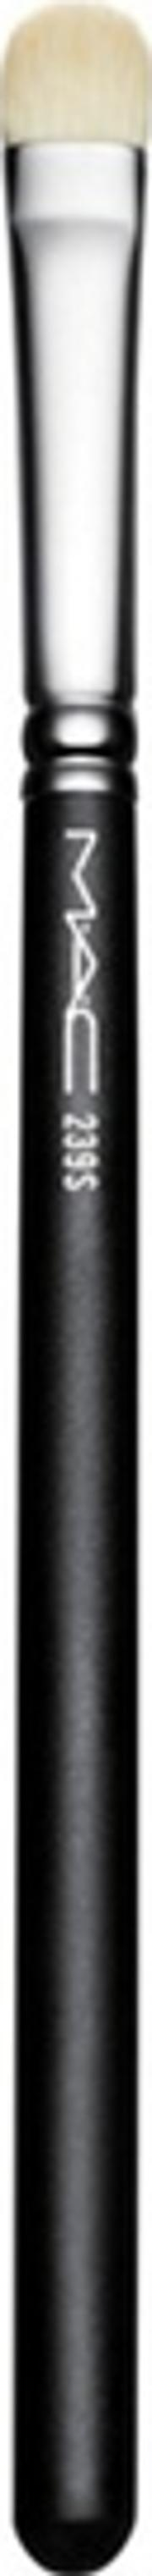 Cosmetics Eye Shader Brush No. 239s